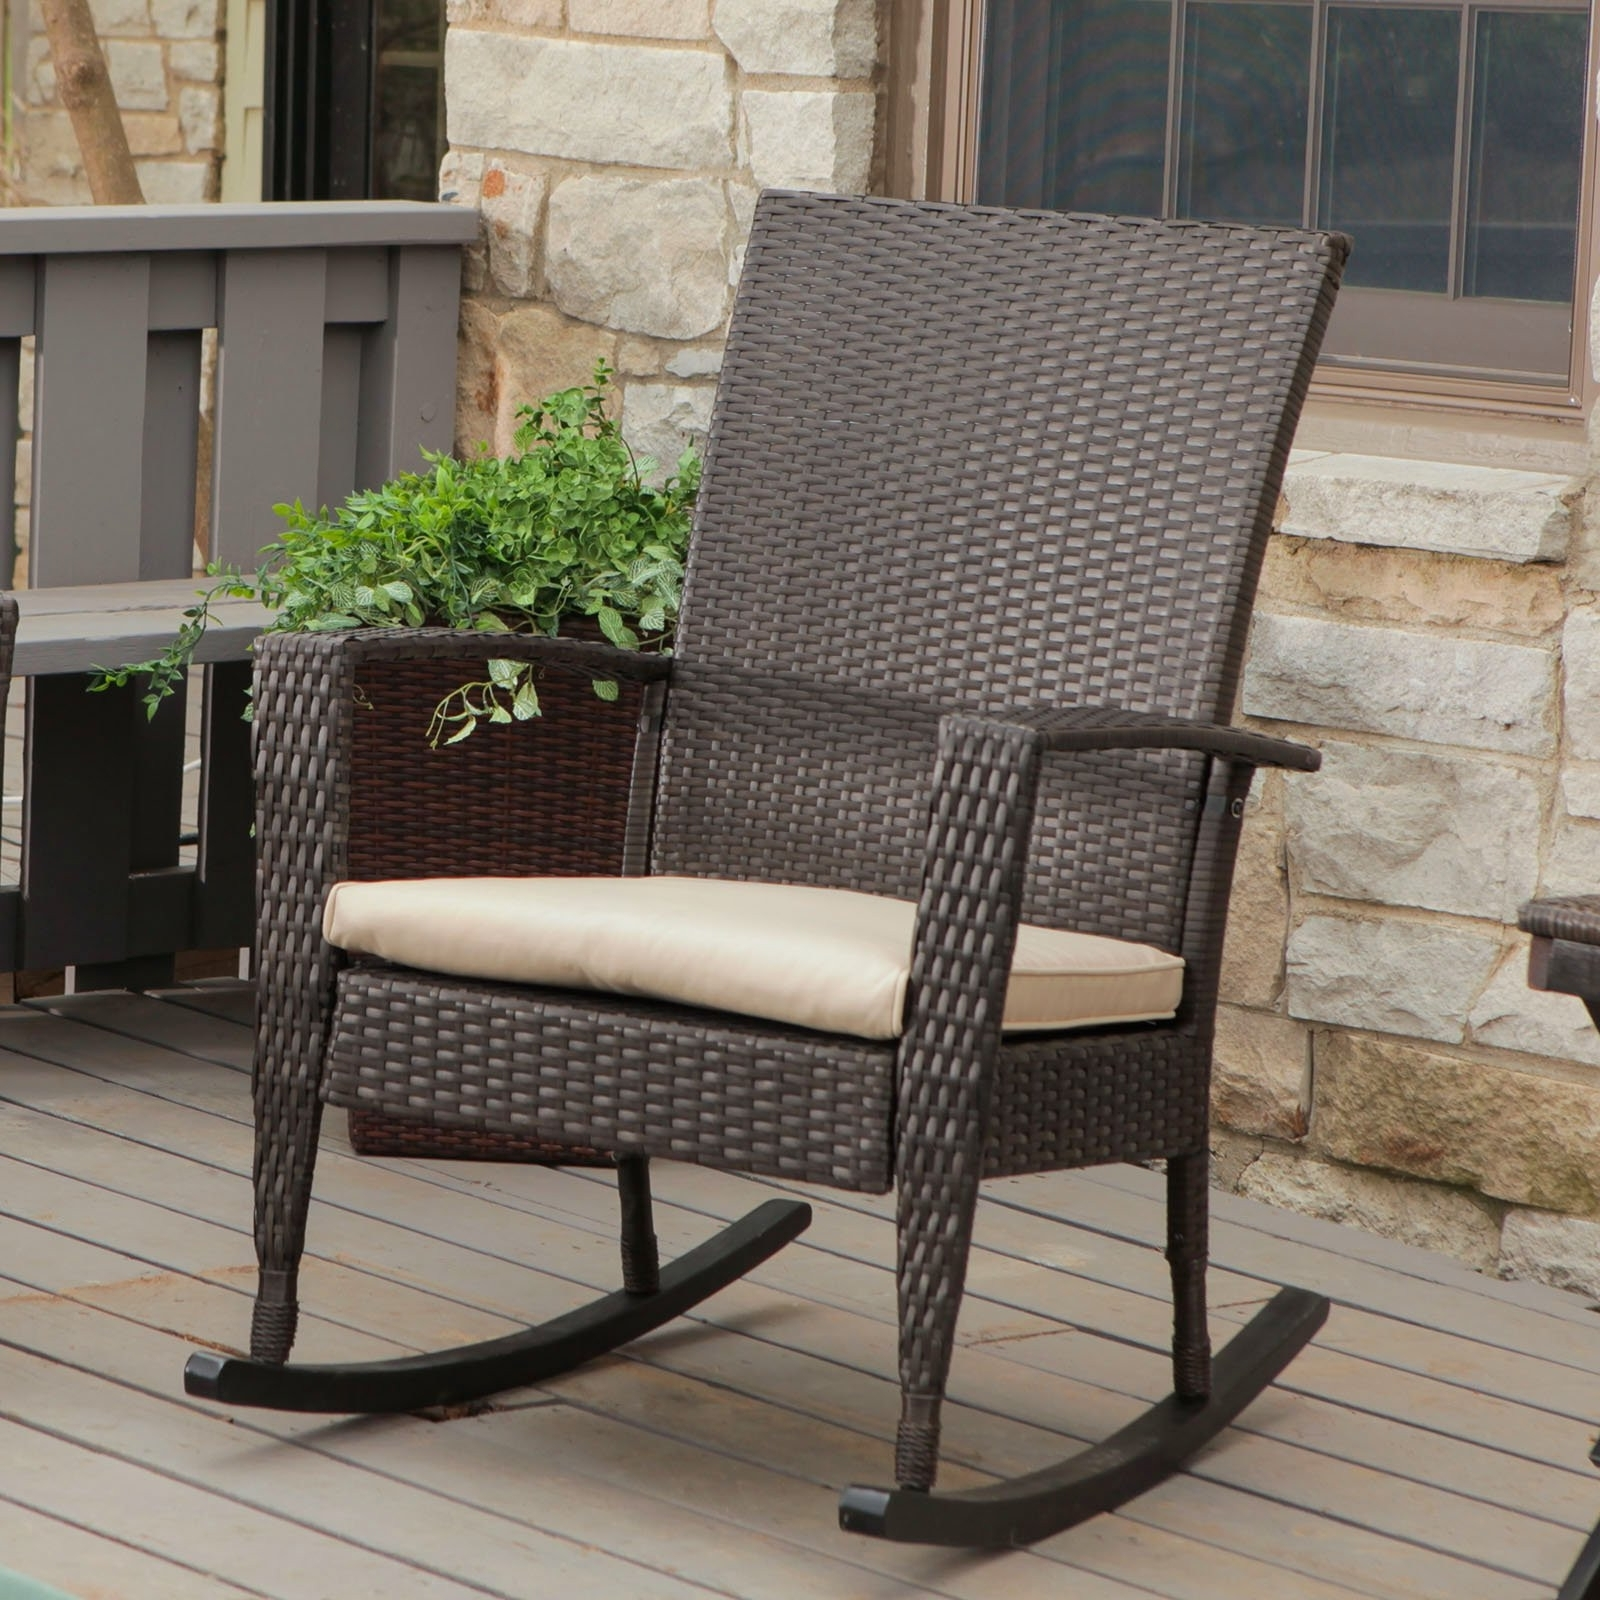 Rocking Patio Furniture Set Beautiful Garden Furniture Covers B And Pertaining To Well Known Outside Rocking Chair Sets (View 14 of 20)